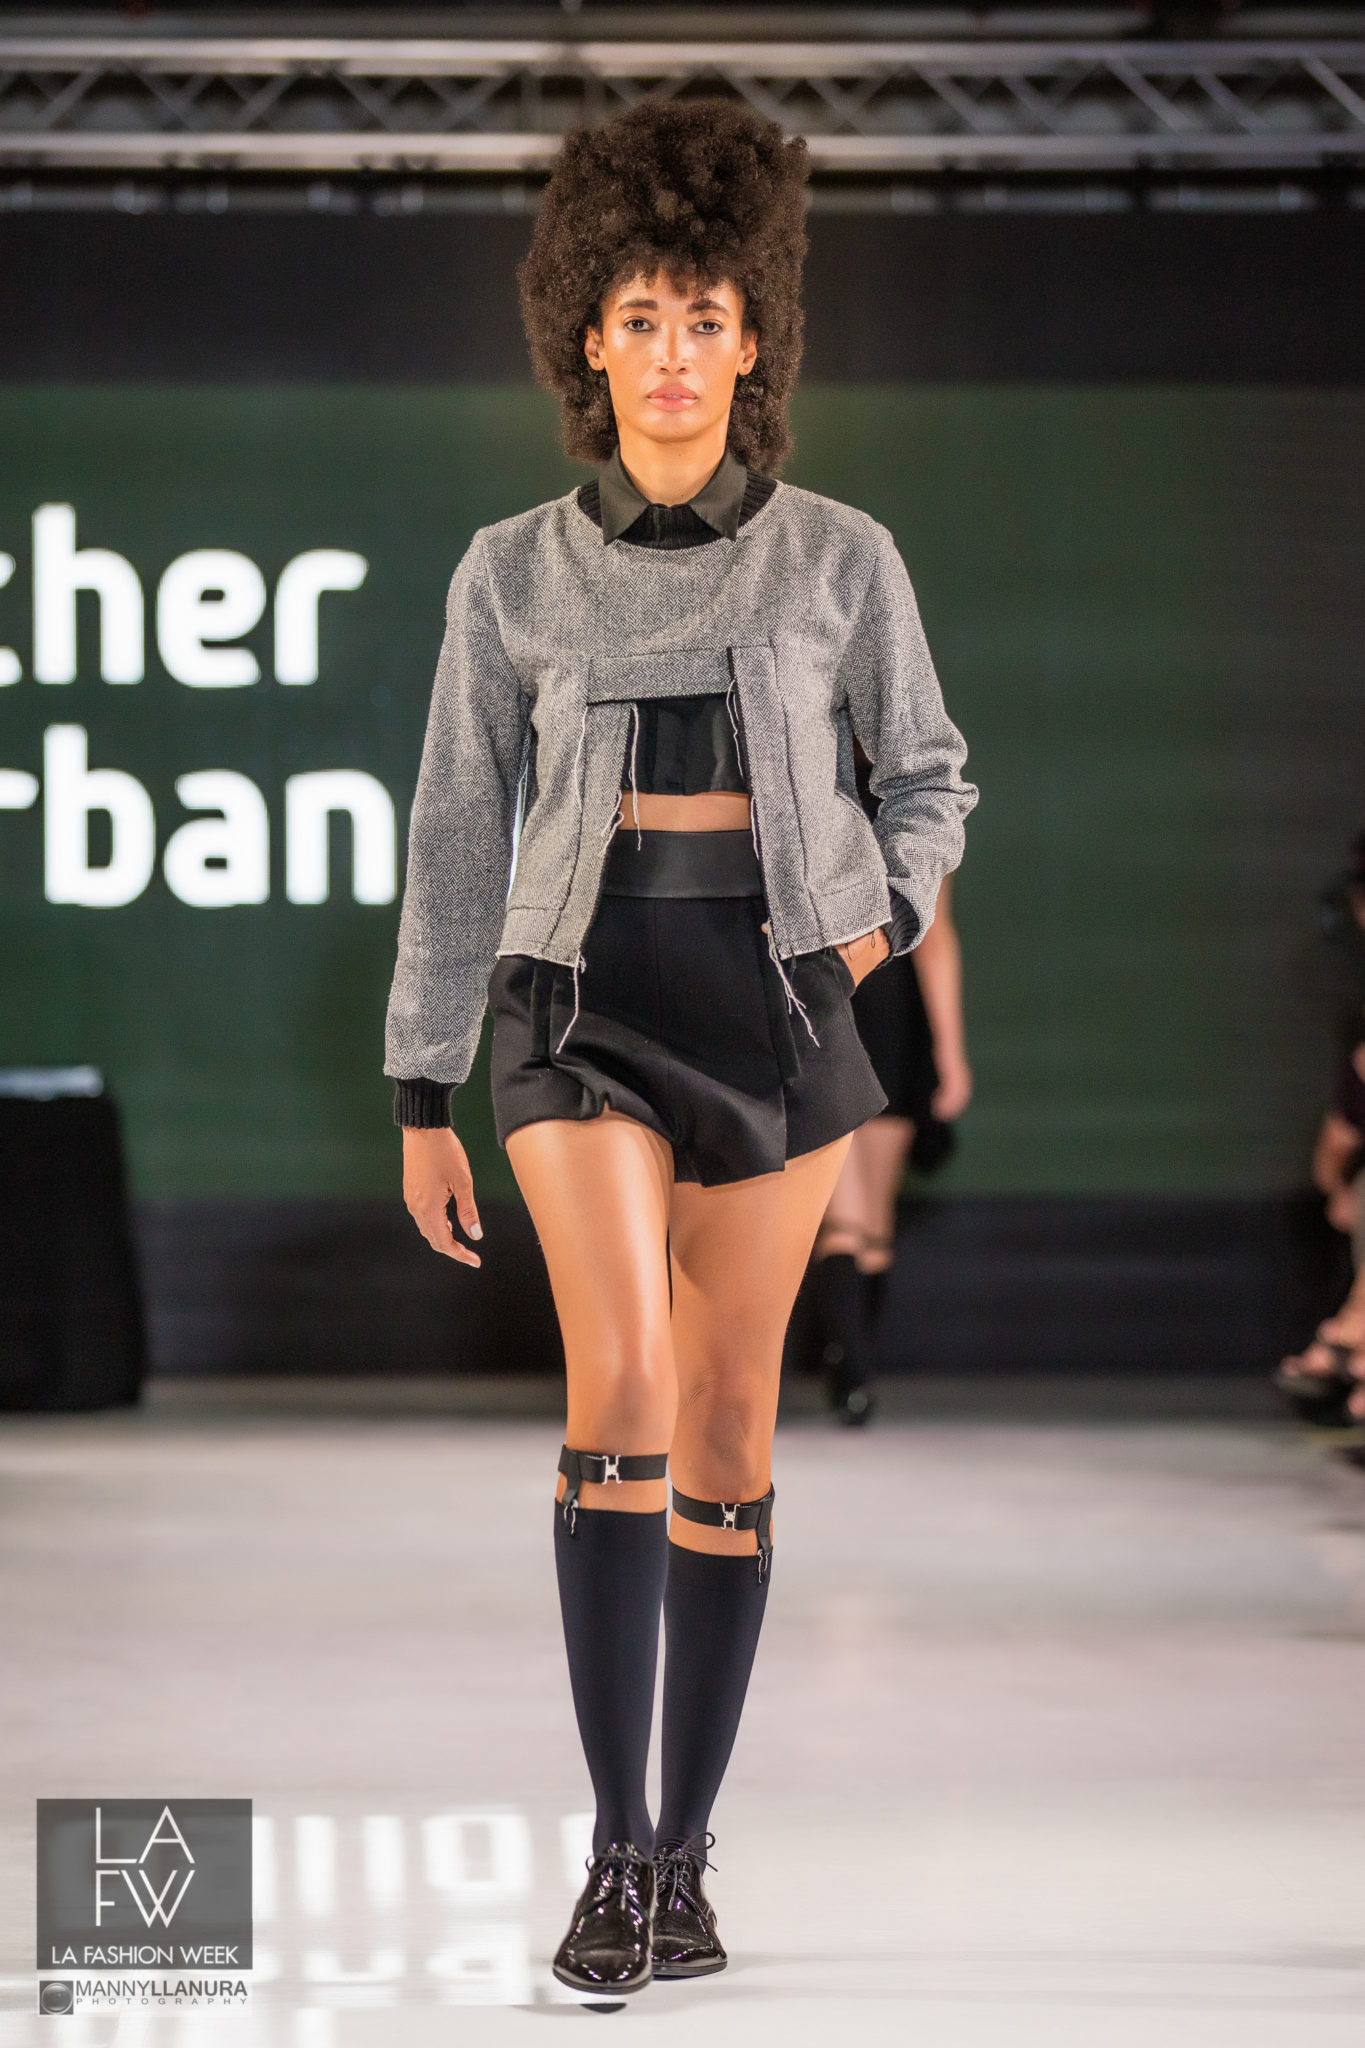 Esther Perbandt Runway LAFW LA Fashion Week 2016